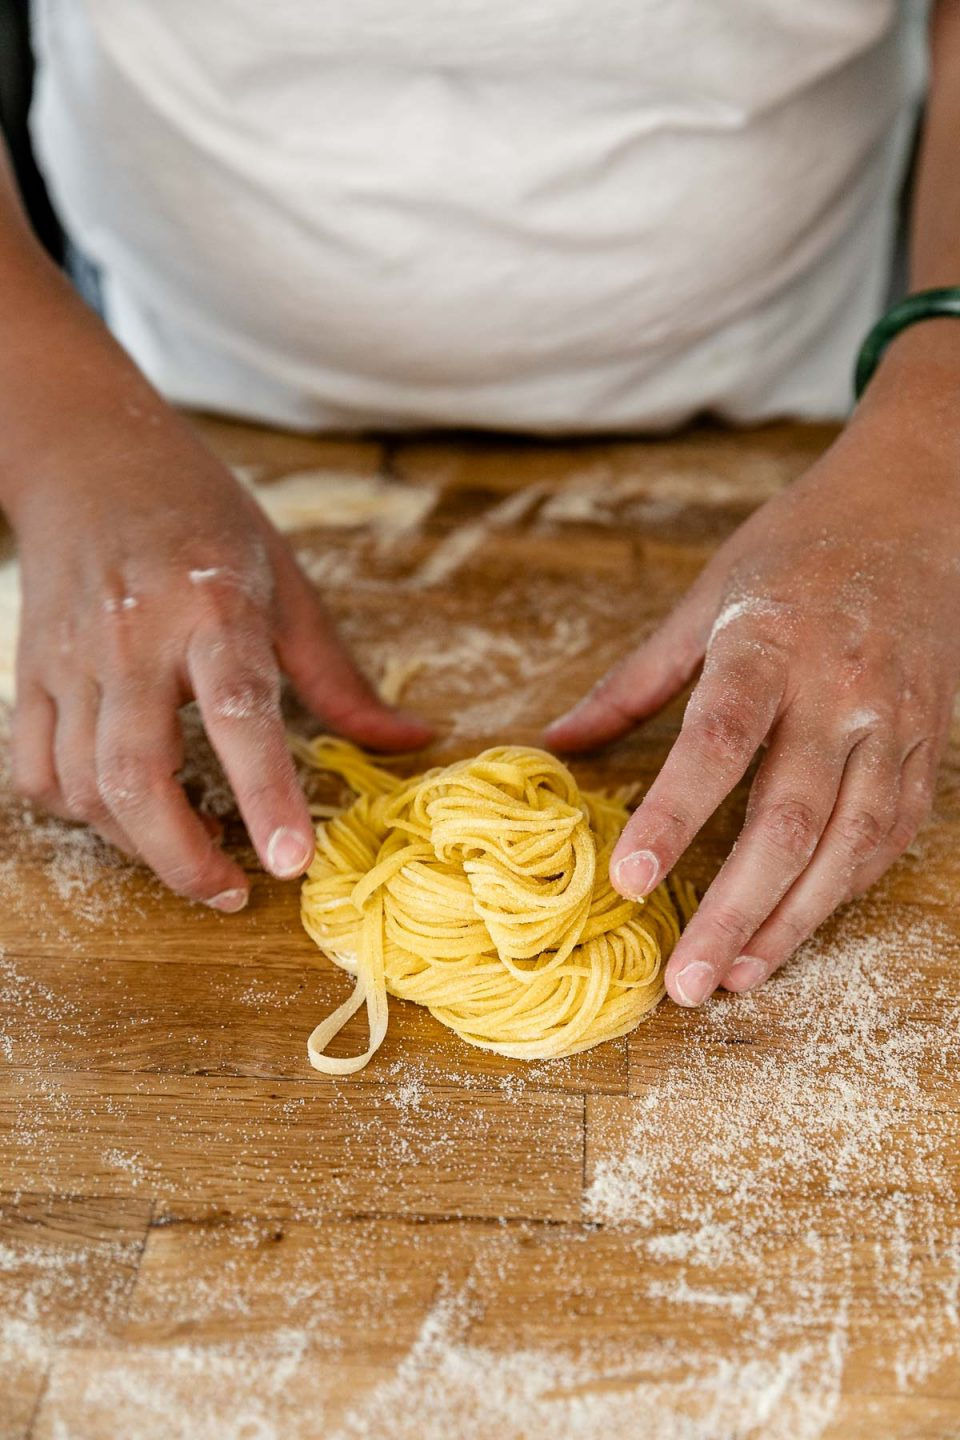 A side angle shot of a woman's hands forming a bundle of fresh pasta from homemade pasta dough cut into spaghetti noddles. The bundle rests atop a butcher block countertop that is dusted with semolina flour.